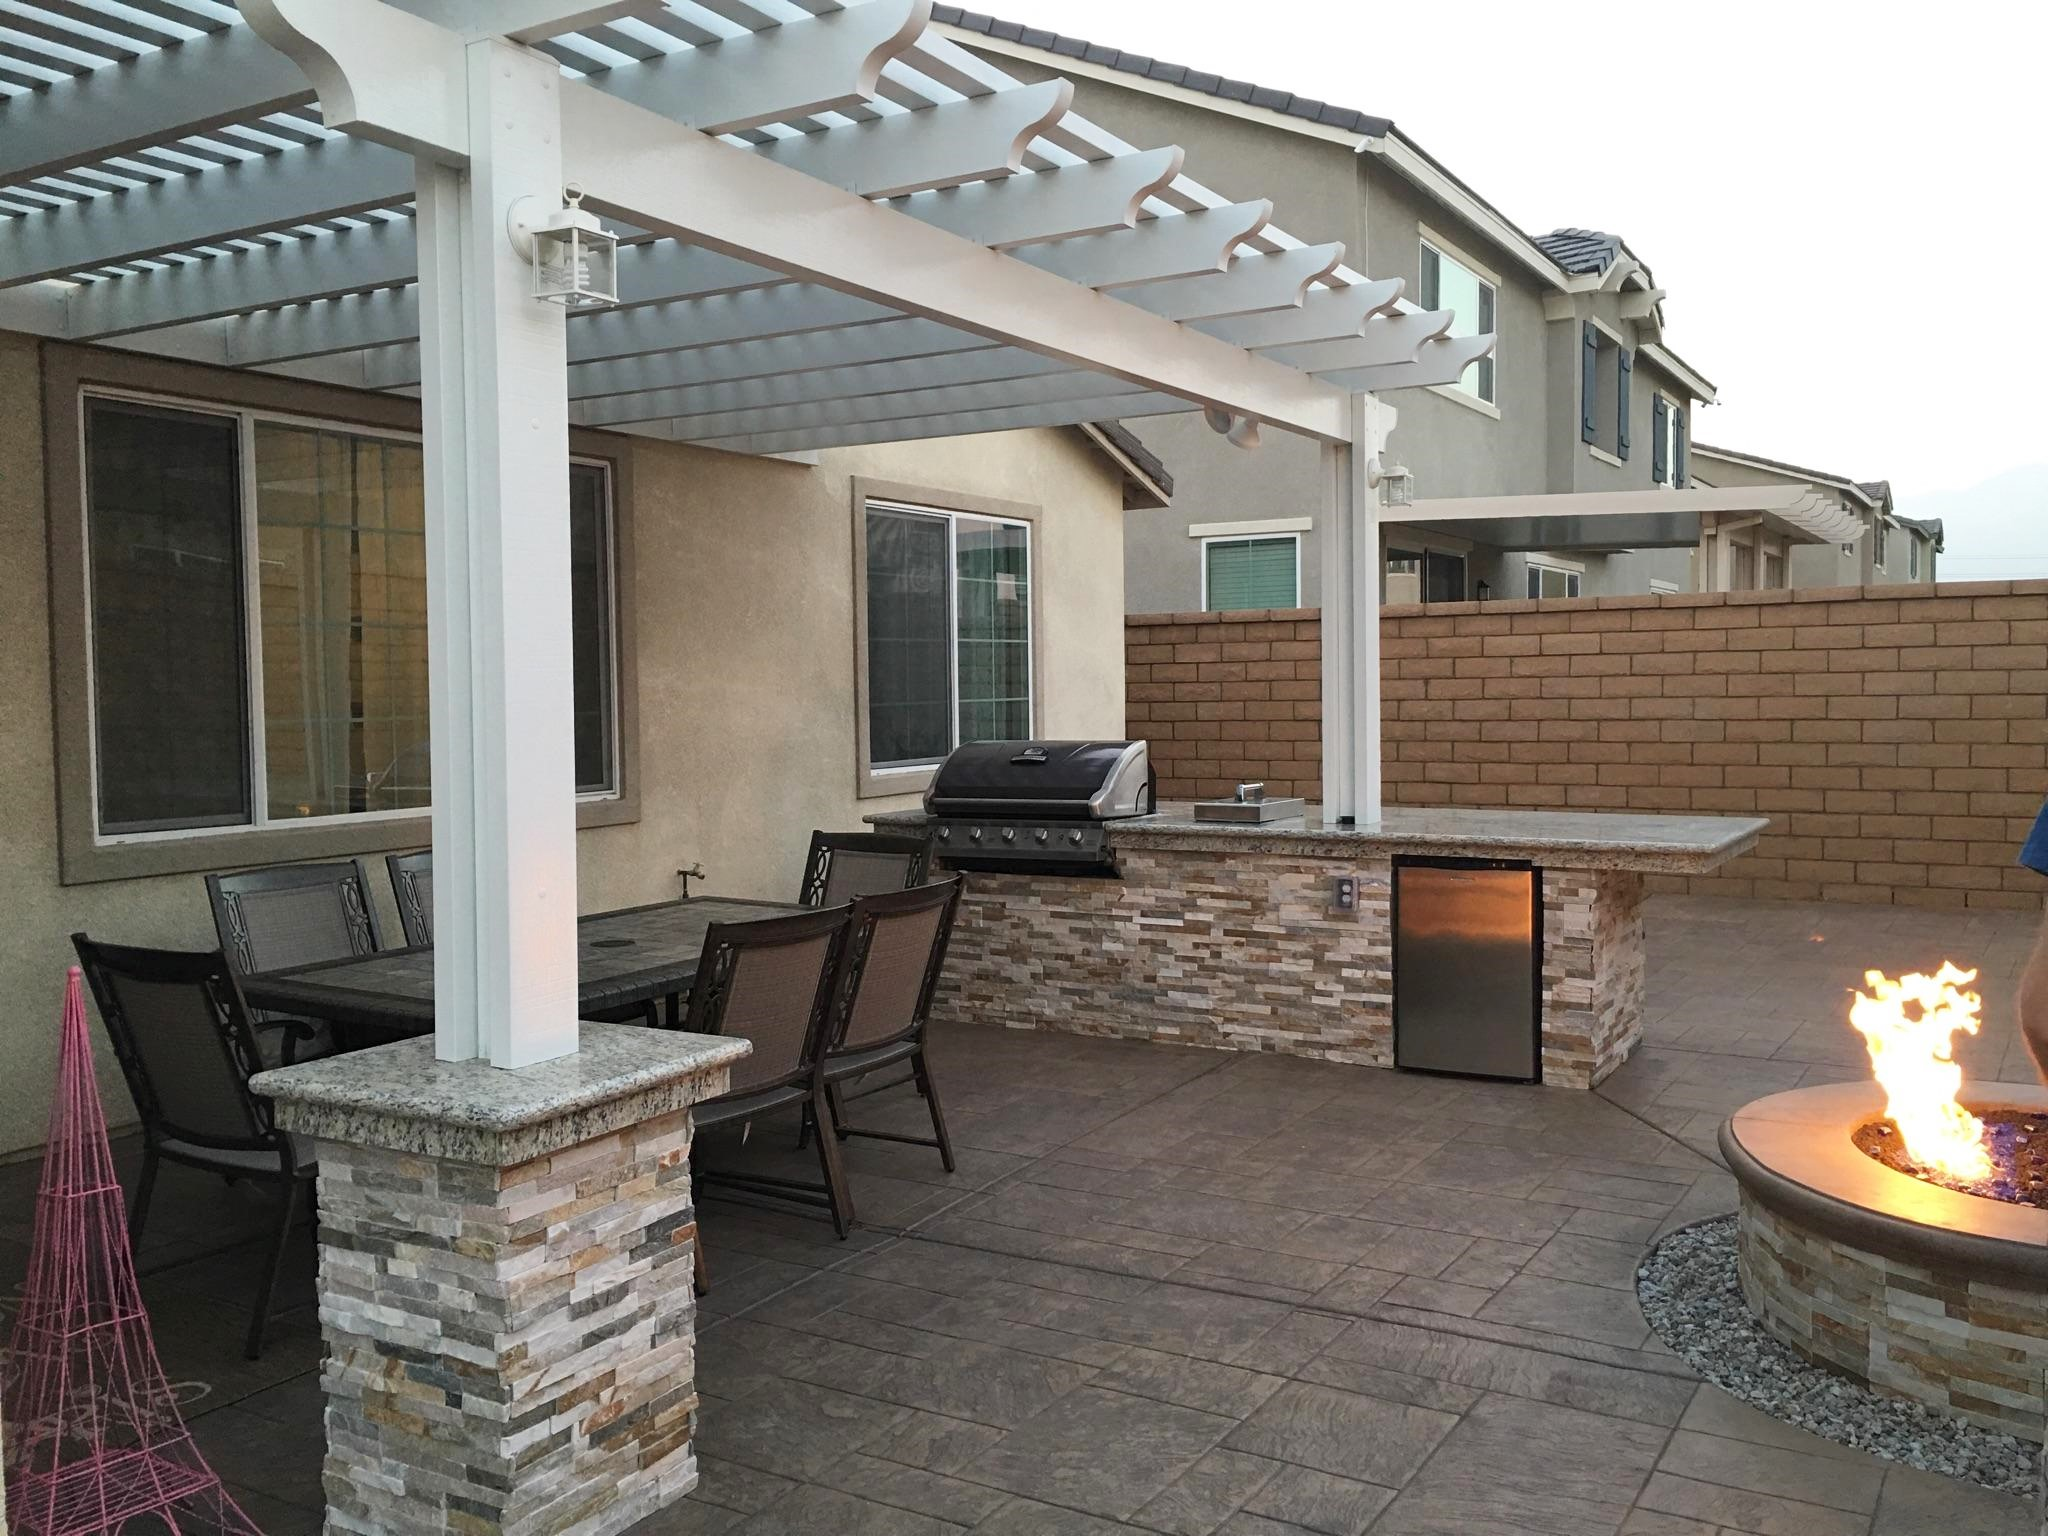 Patio Covers Concrete Slabs Hardscape Room Additions Contractor